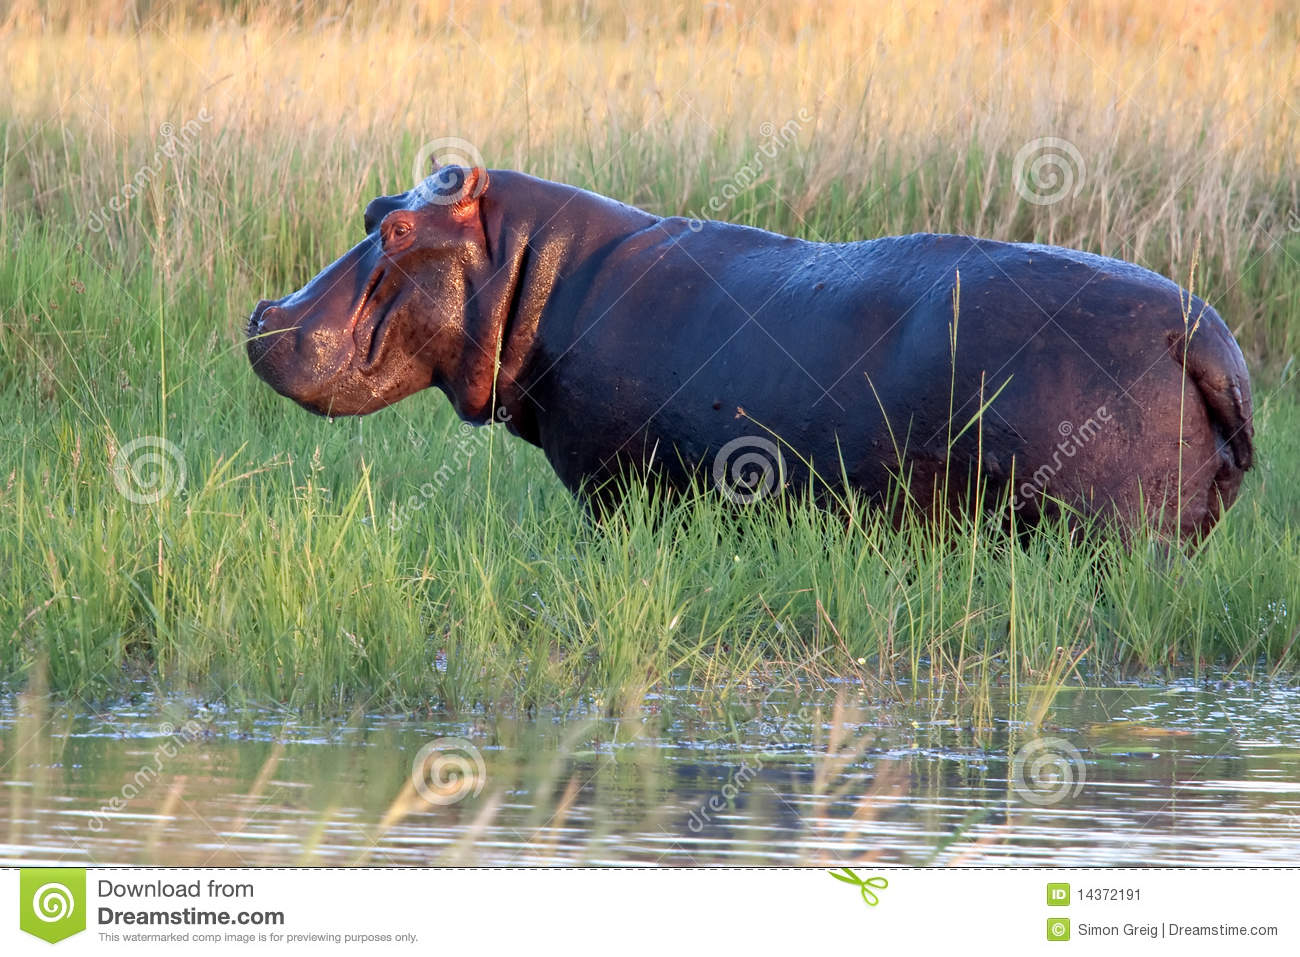 Hippopotamus Out of the Water